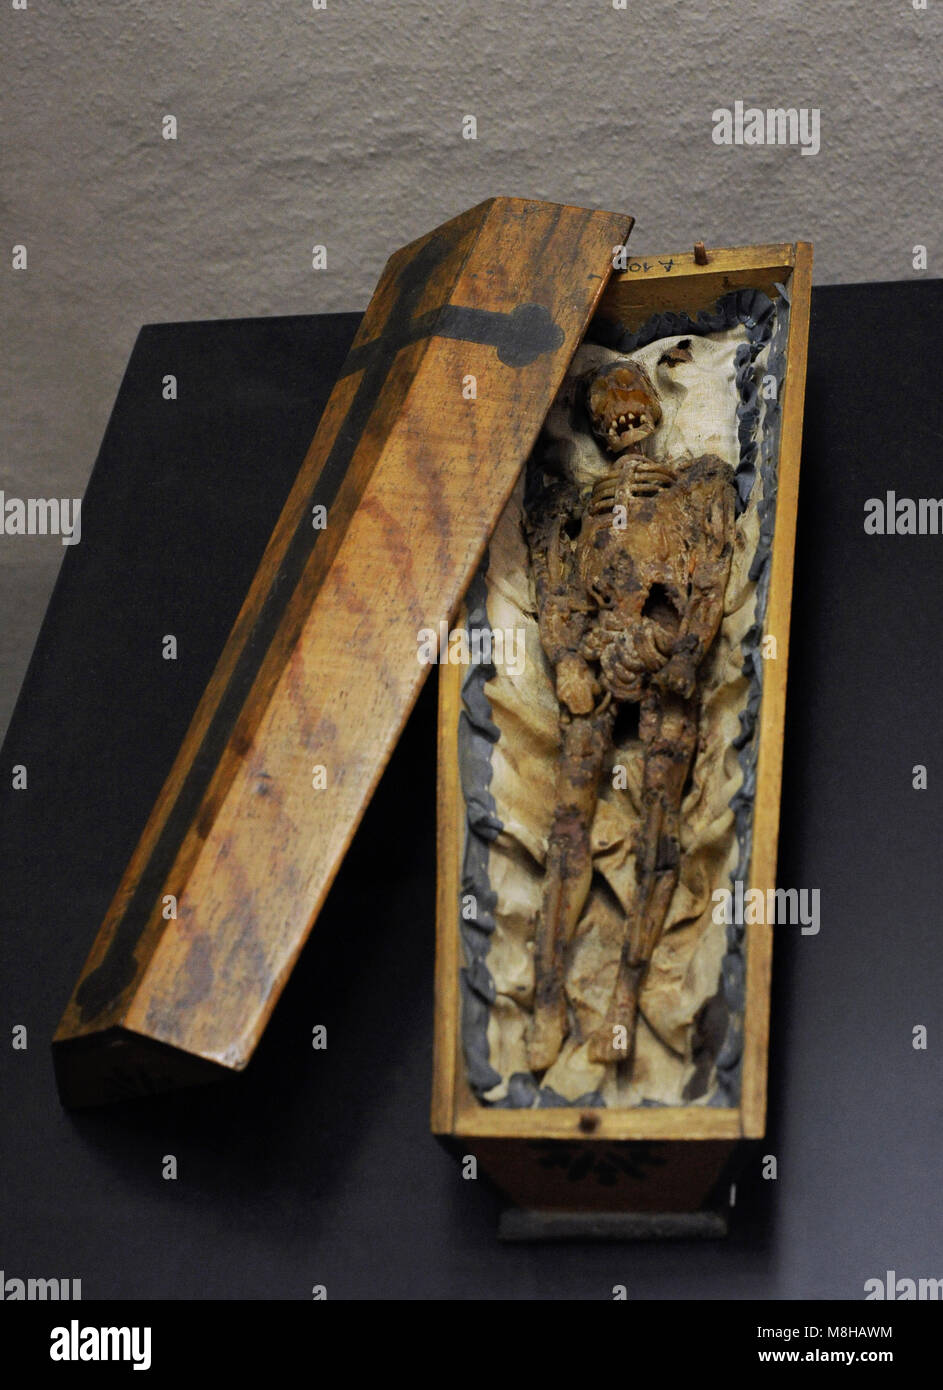 Memento mori in the form of a small coffin. Southern Germany (?), 18th century. Wax figure on silk in a wooden coffin. - Stock Image